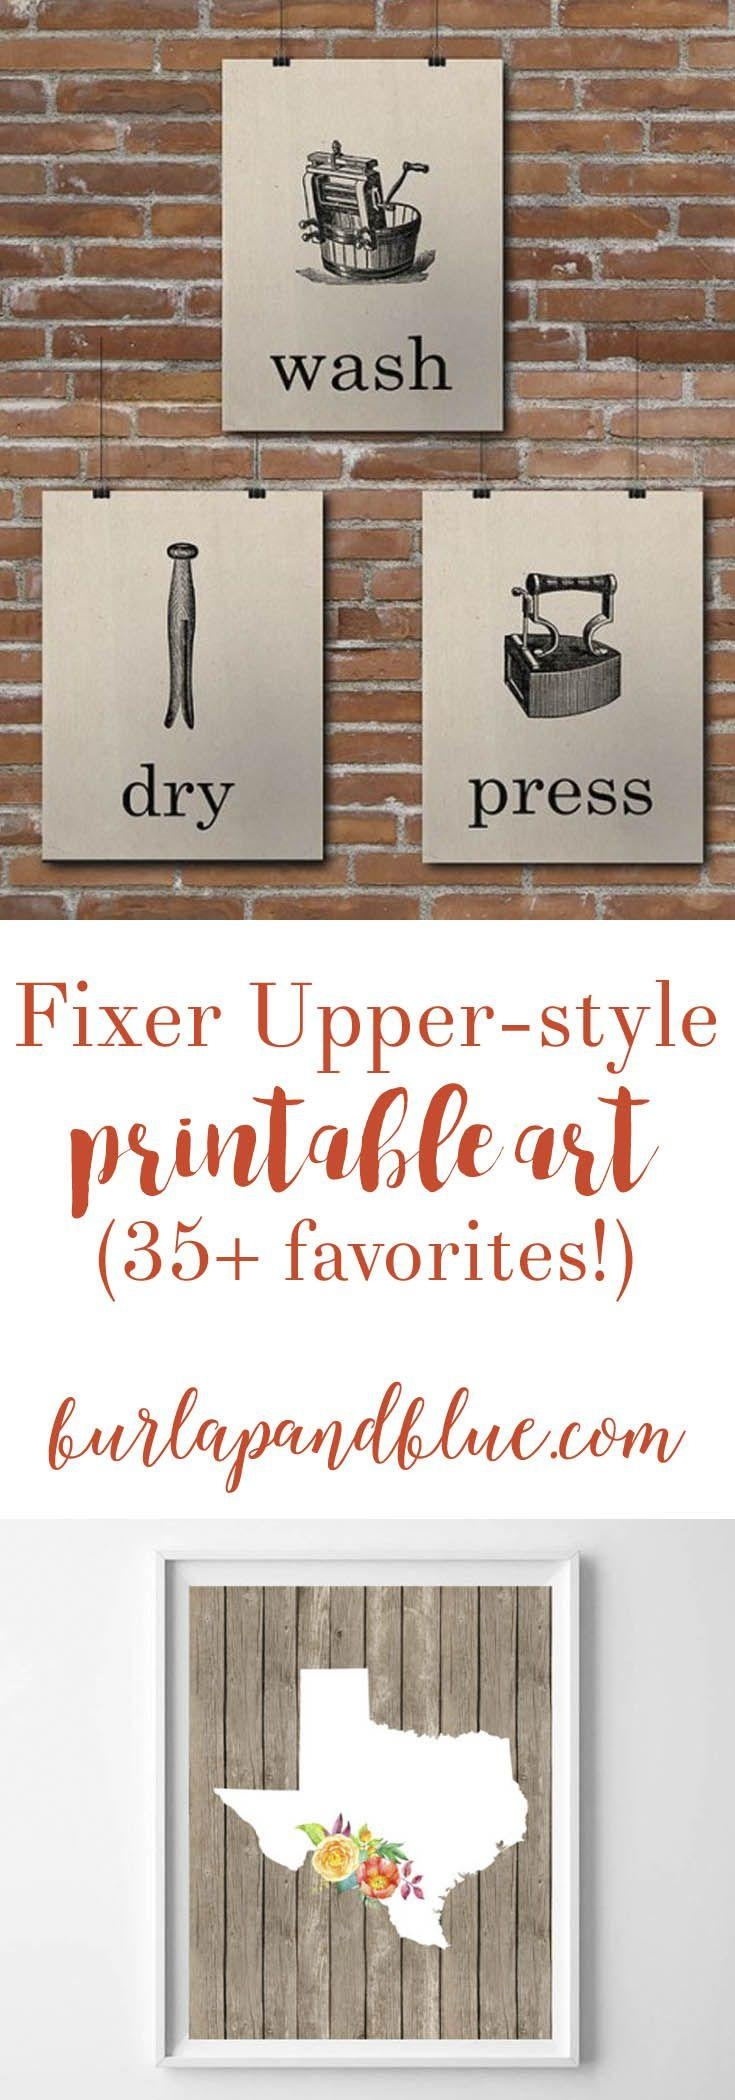 Top 25+ Best Free Printable Art Ideas On Pinterest | Free Art Throughout Farmhouse Wall Art (View 17 of 20)